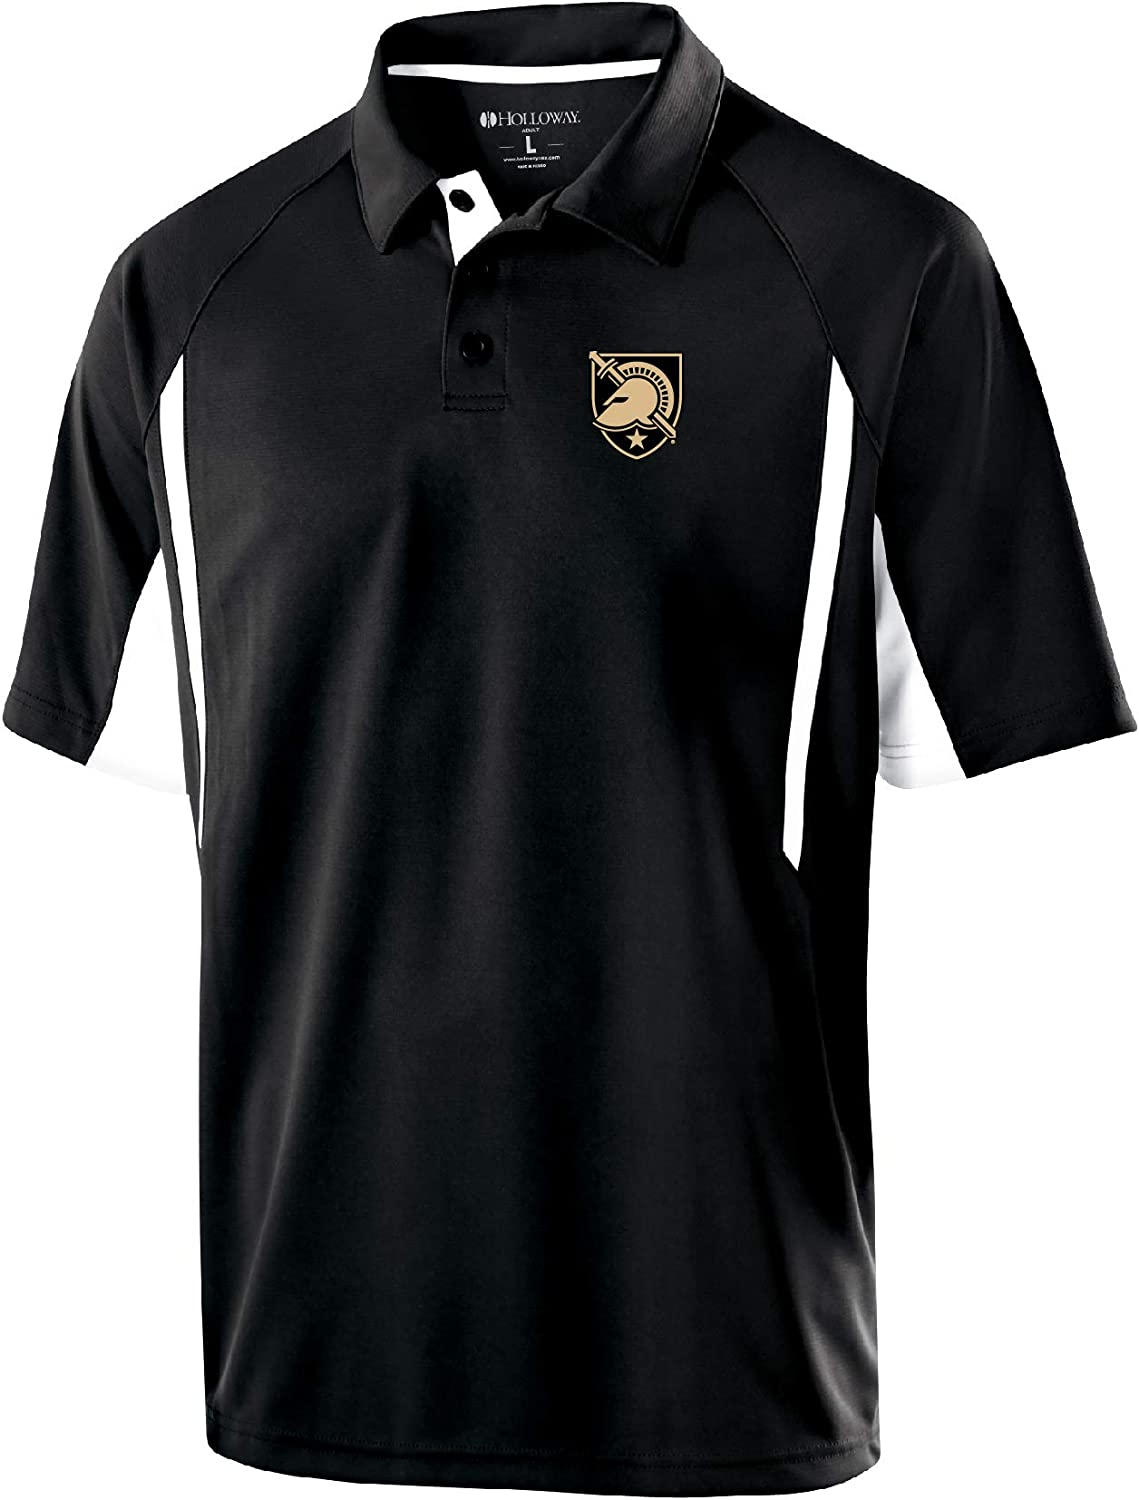 Ouray Max 78% OFF Sportswear Manufacturer regenerated product Men's Polo Avenger